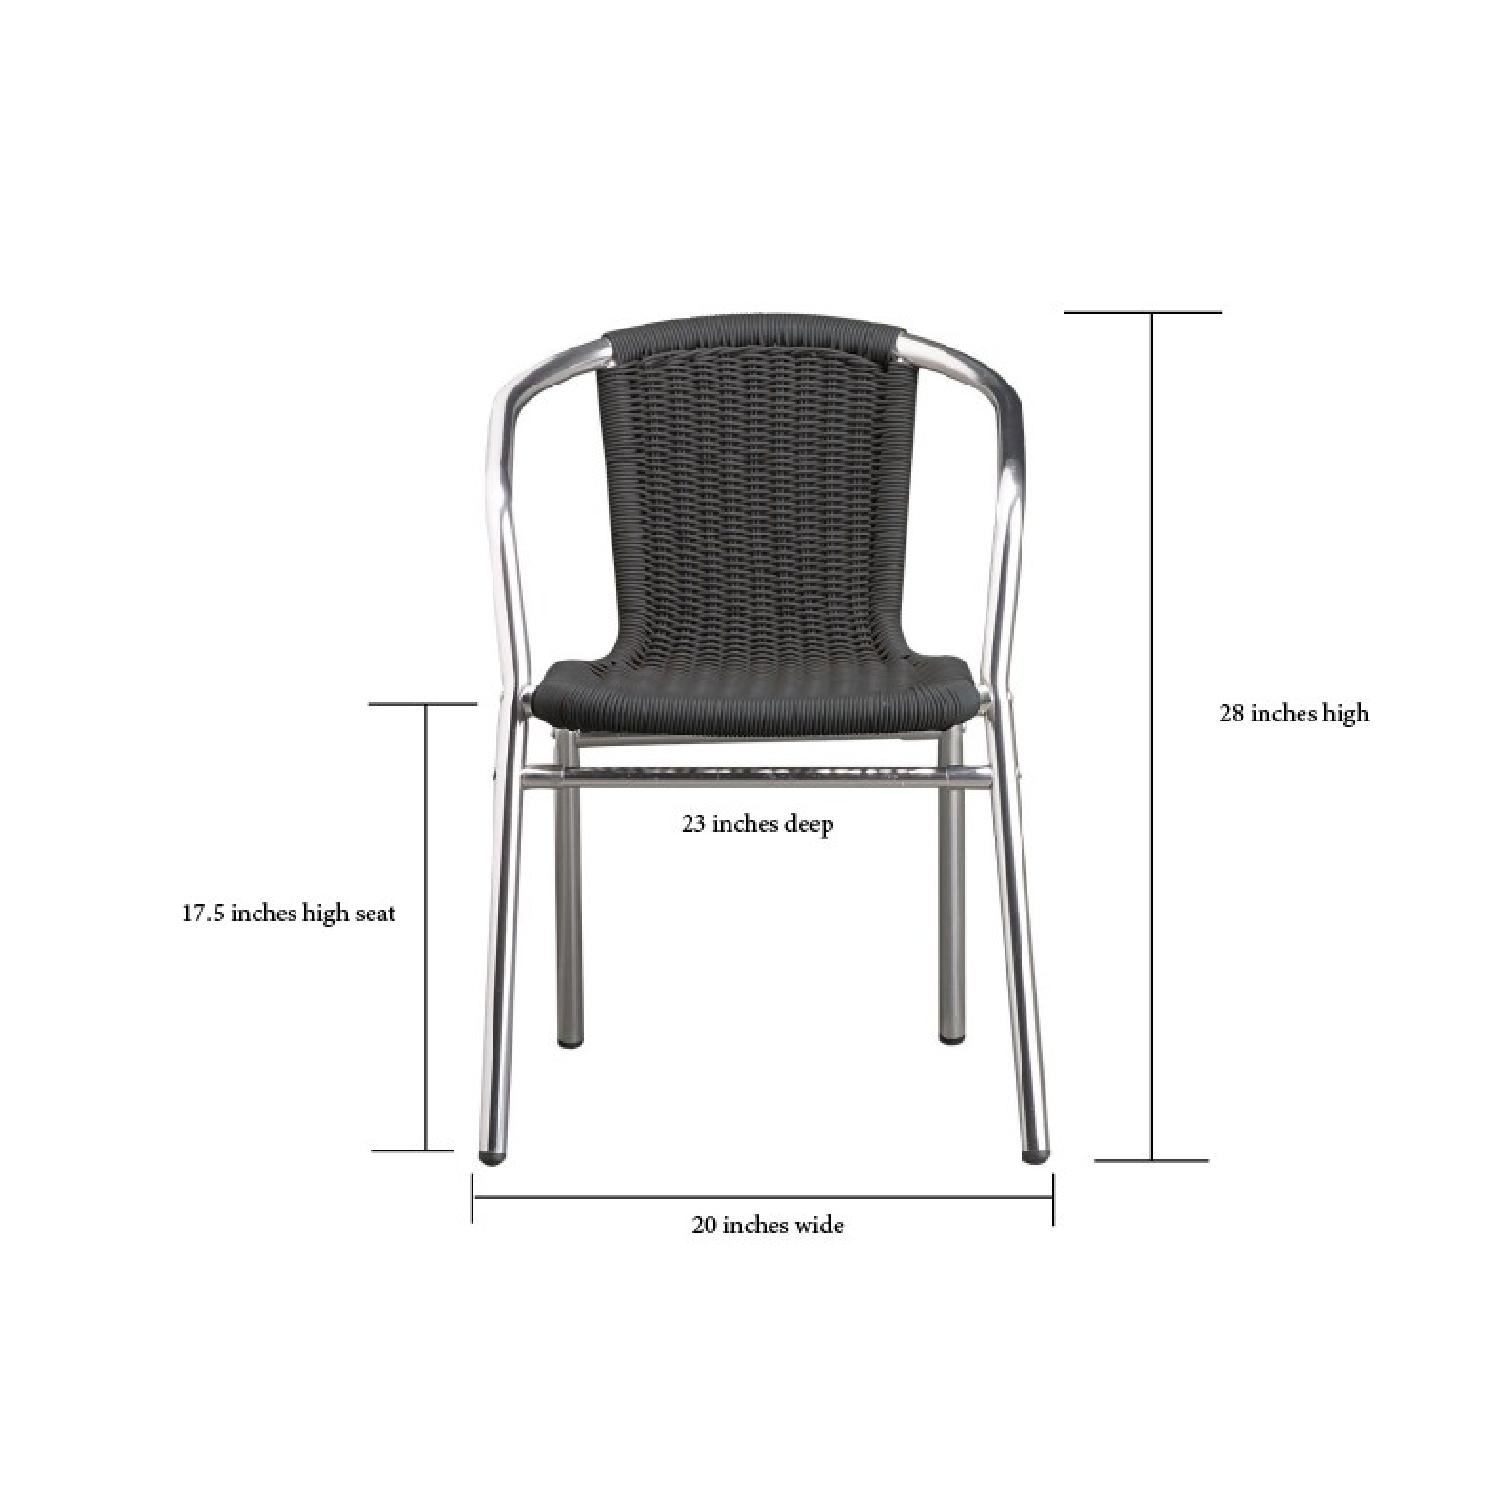 CB2 Stackable Outdoor Dining Chairs-1